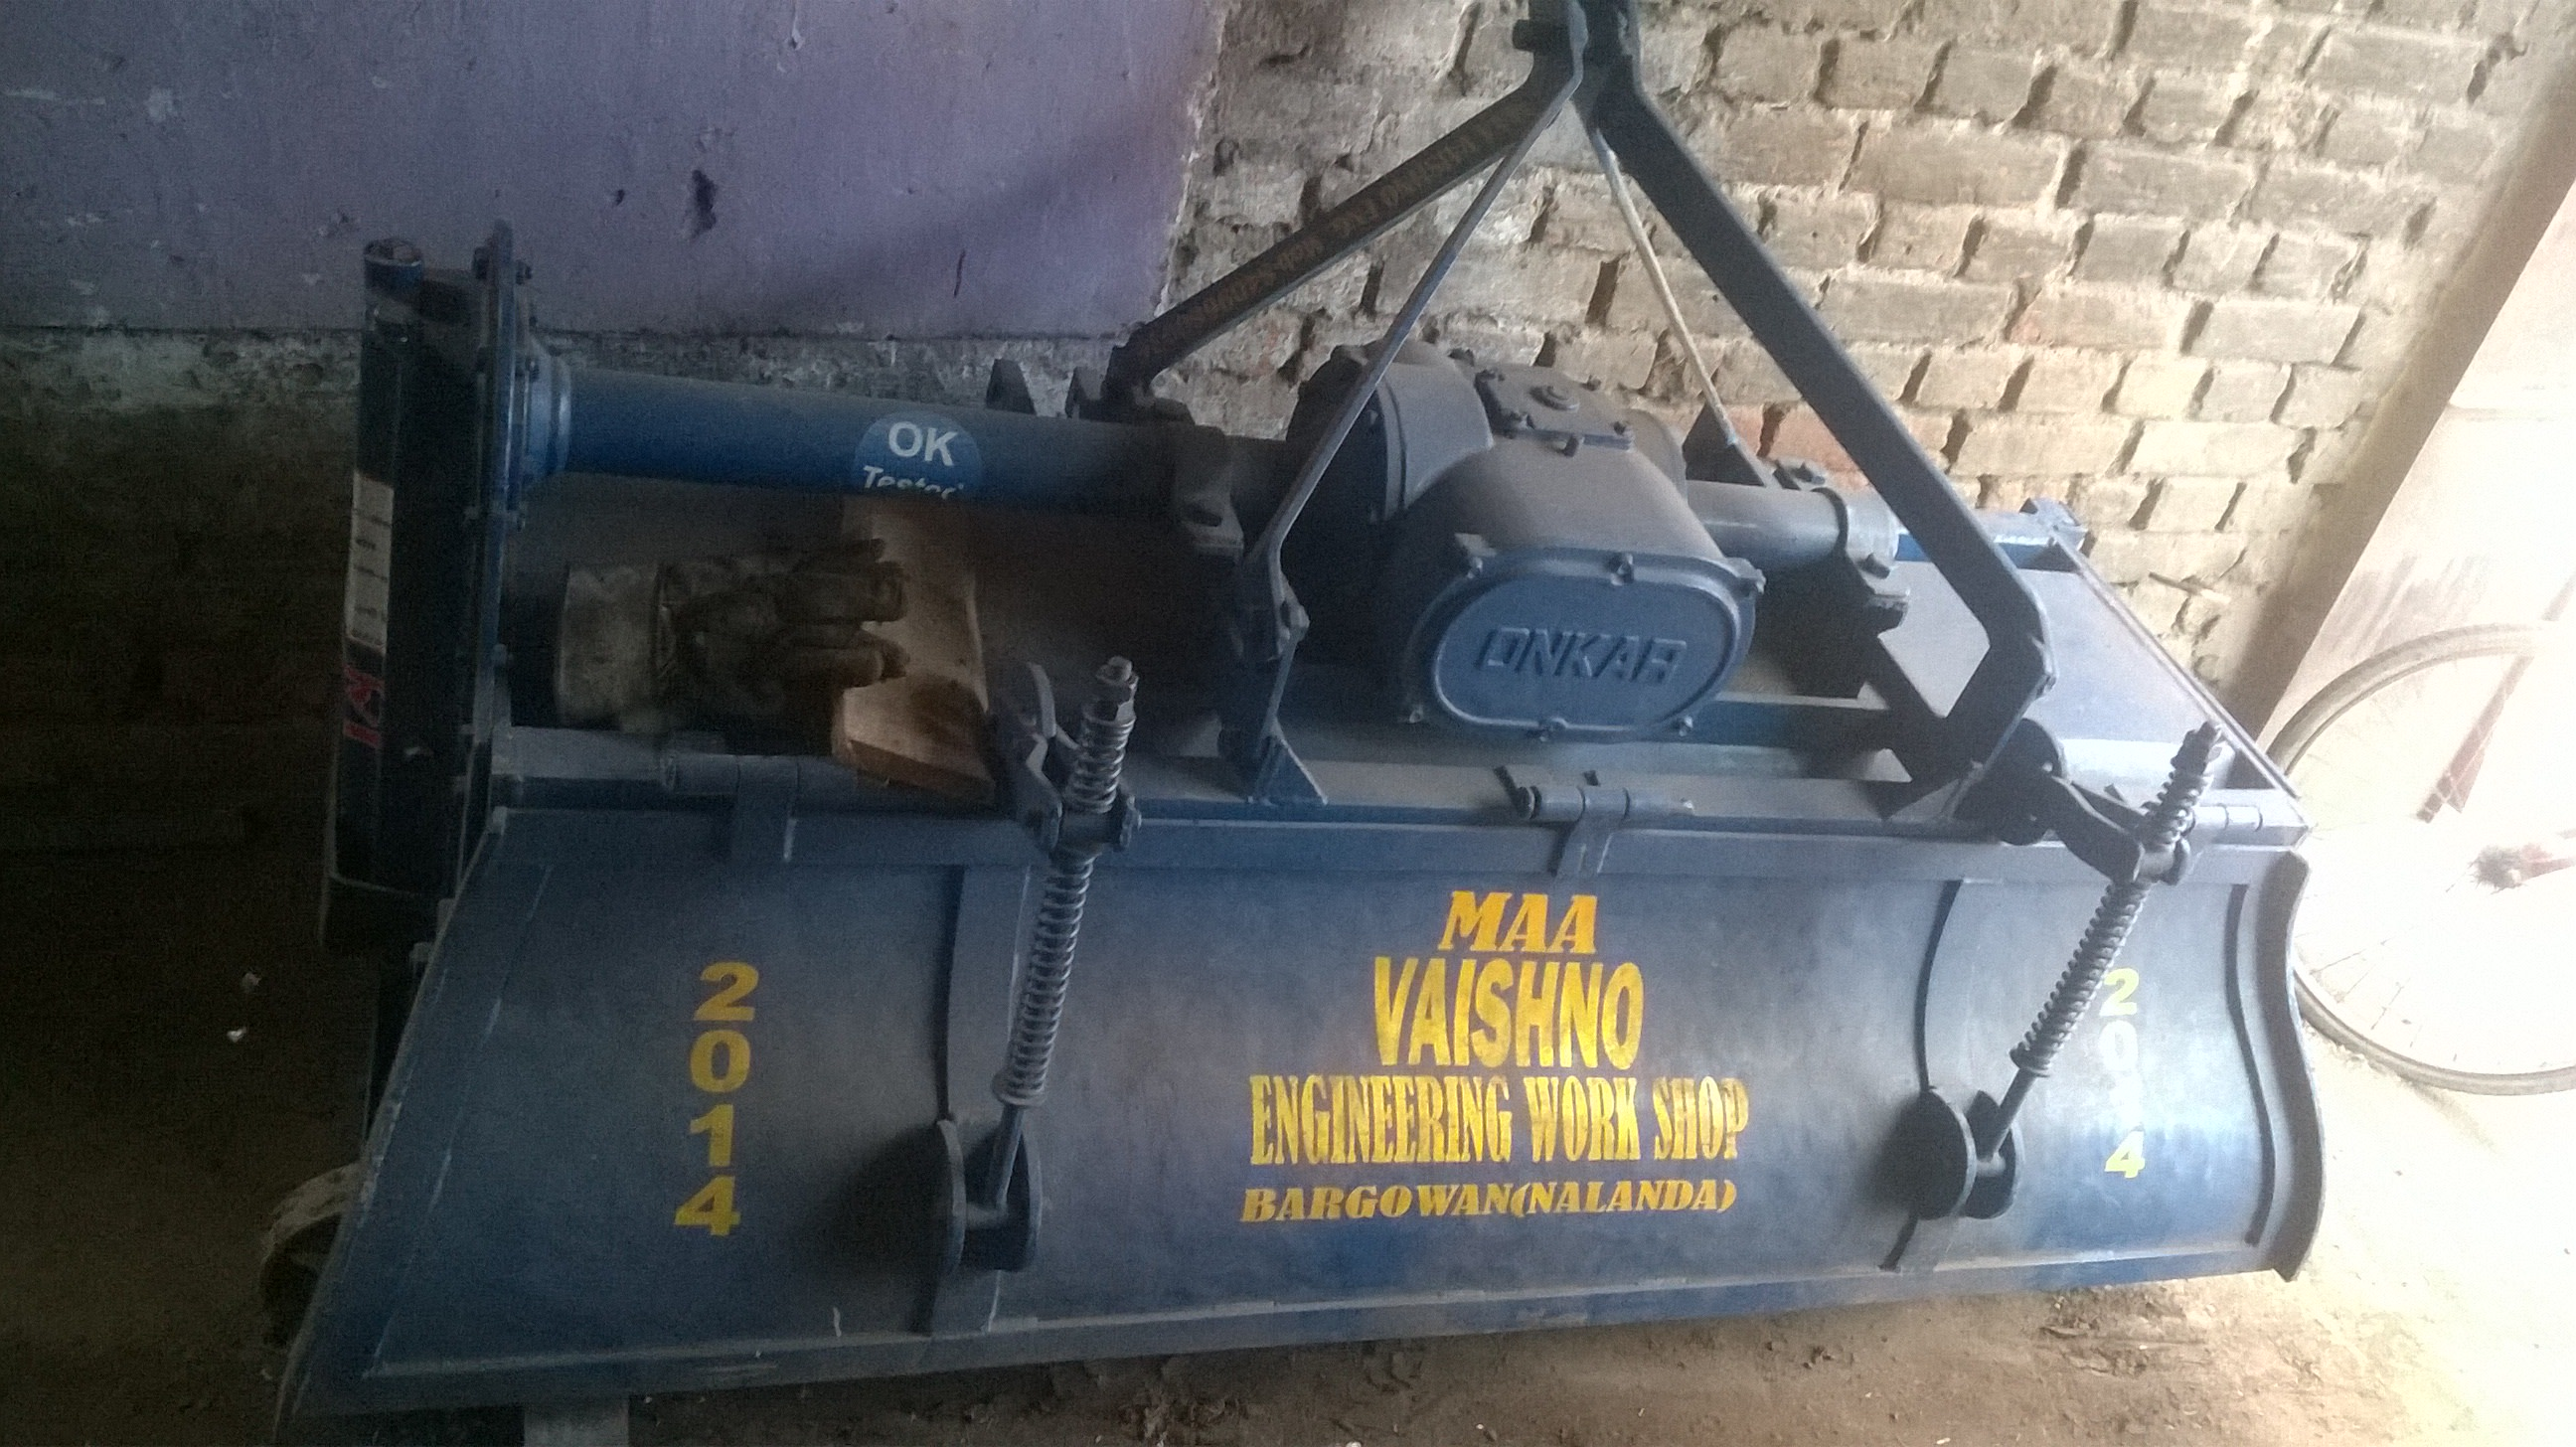 A Rotavator manufactured by Maa Vaishno Engineering Workshop